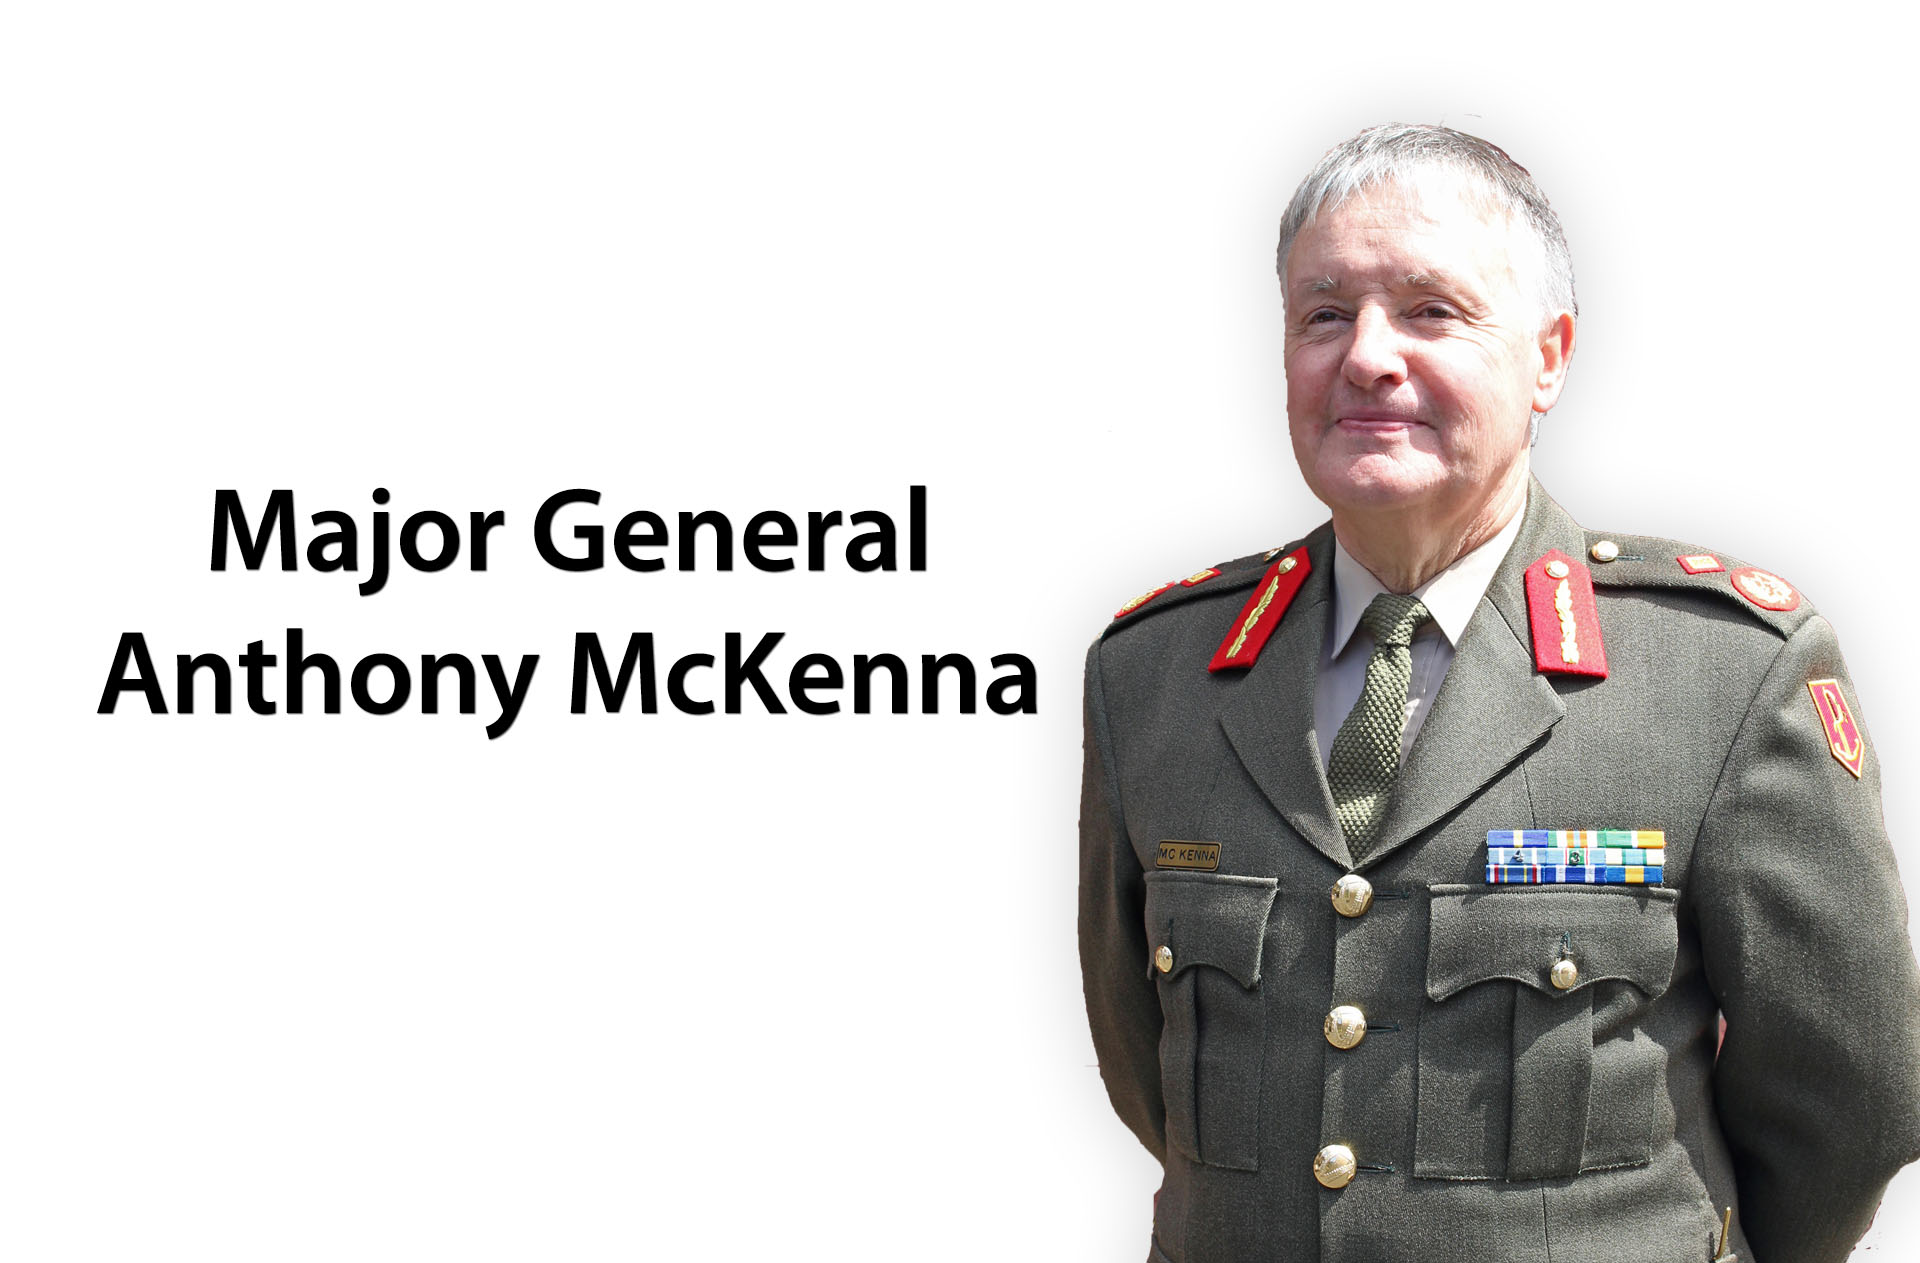 Major General Anthony McKenna